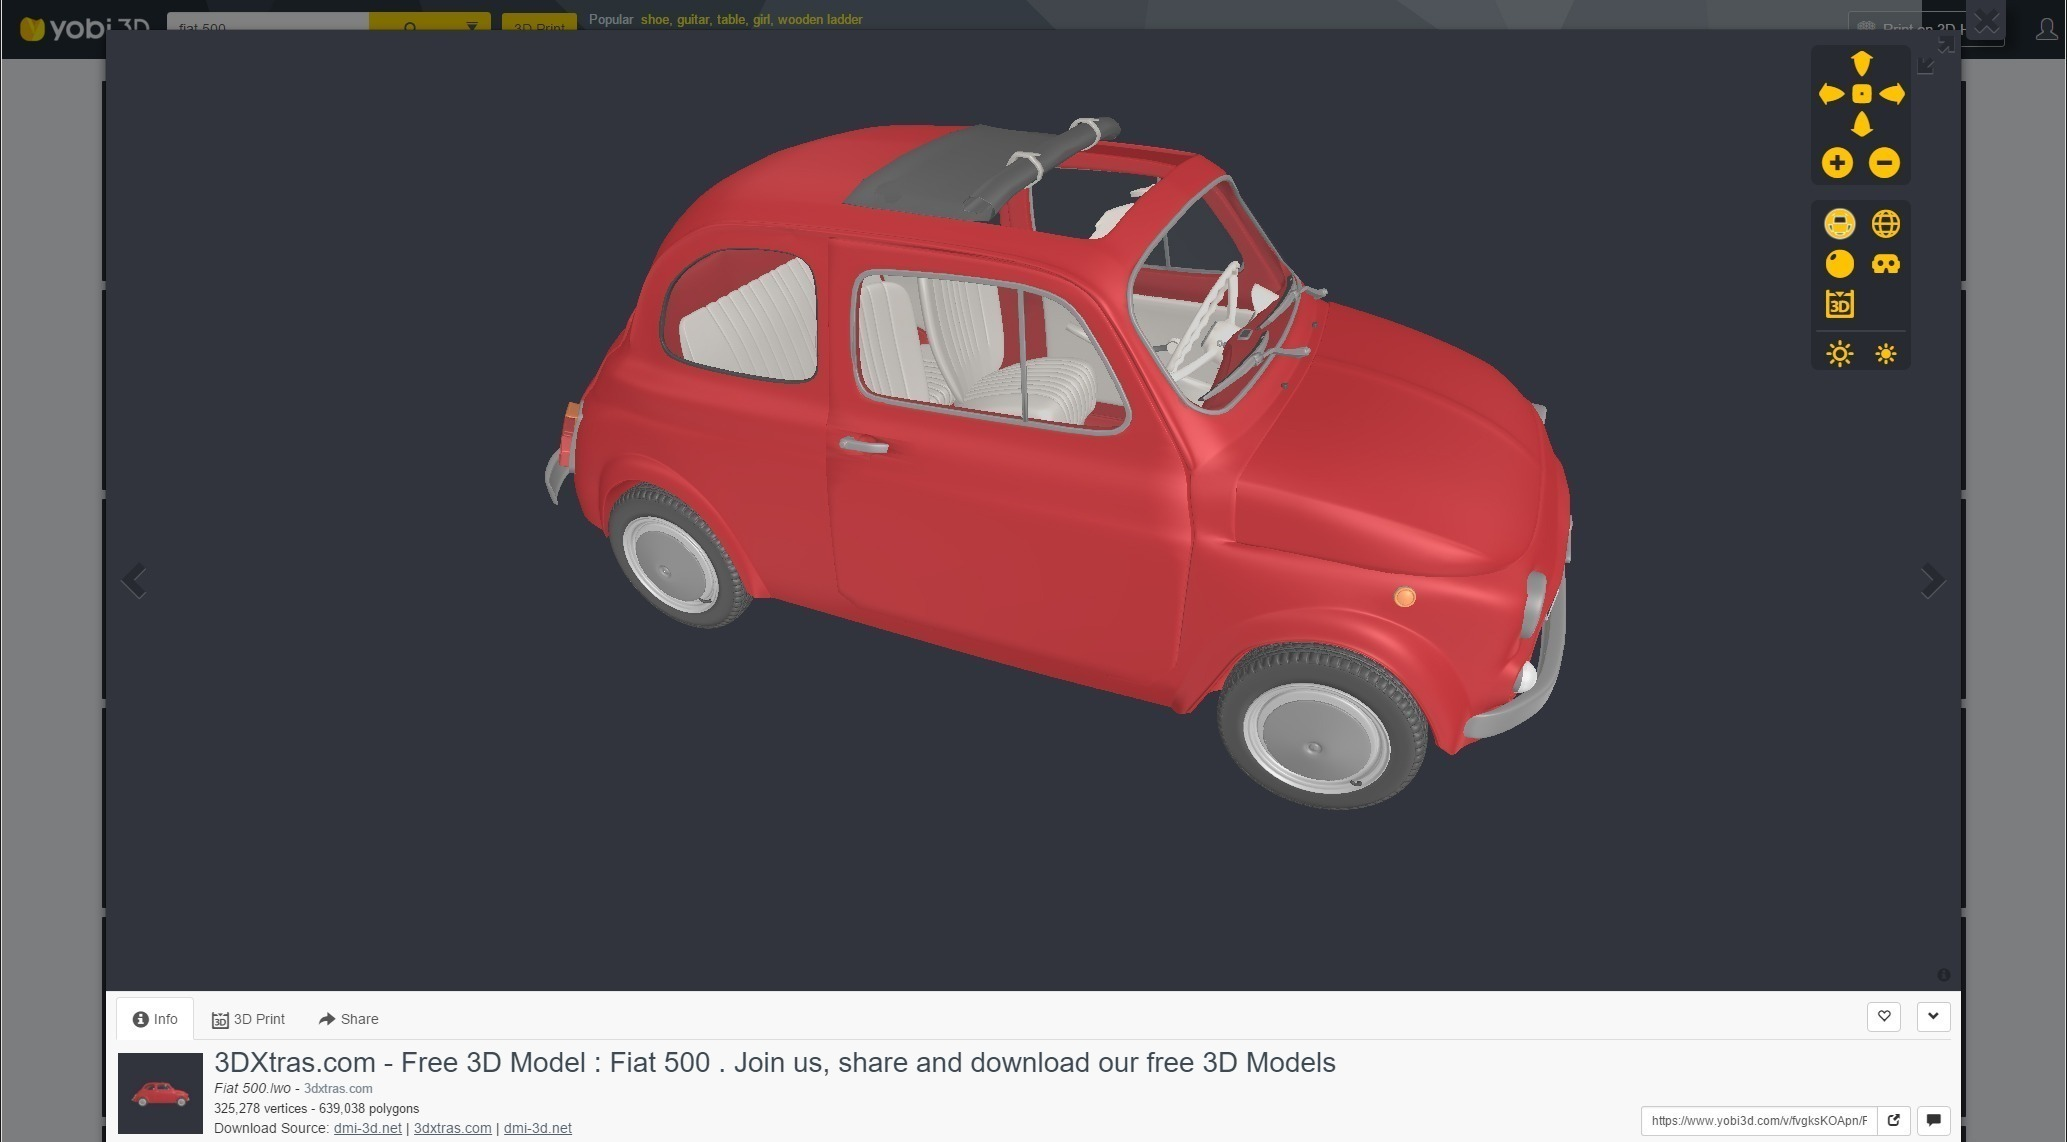 Yobi3D Model Search Finds the Most 3D Printable File (And Anything